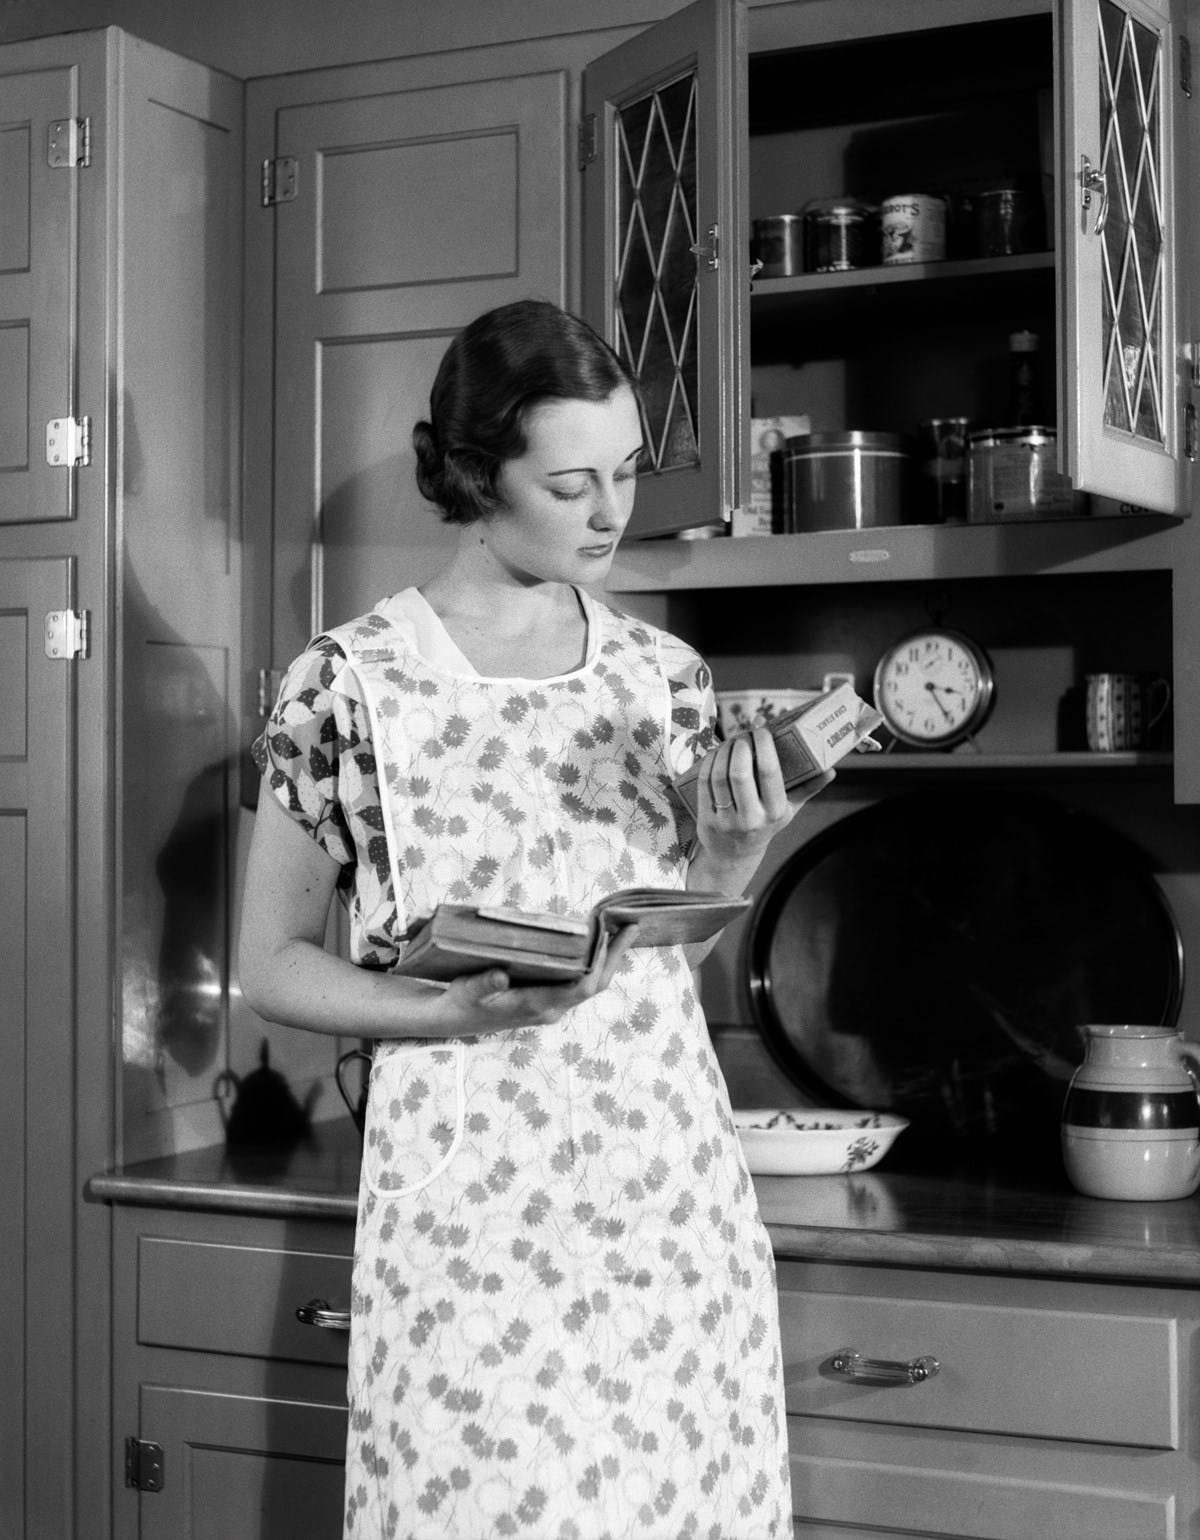 Black and white photo of a housewife wearing an apron in a kitchen. She is standing in front of a cupboard, holding a cookbook in one hand and reading a package of cornstarch from her other hand.